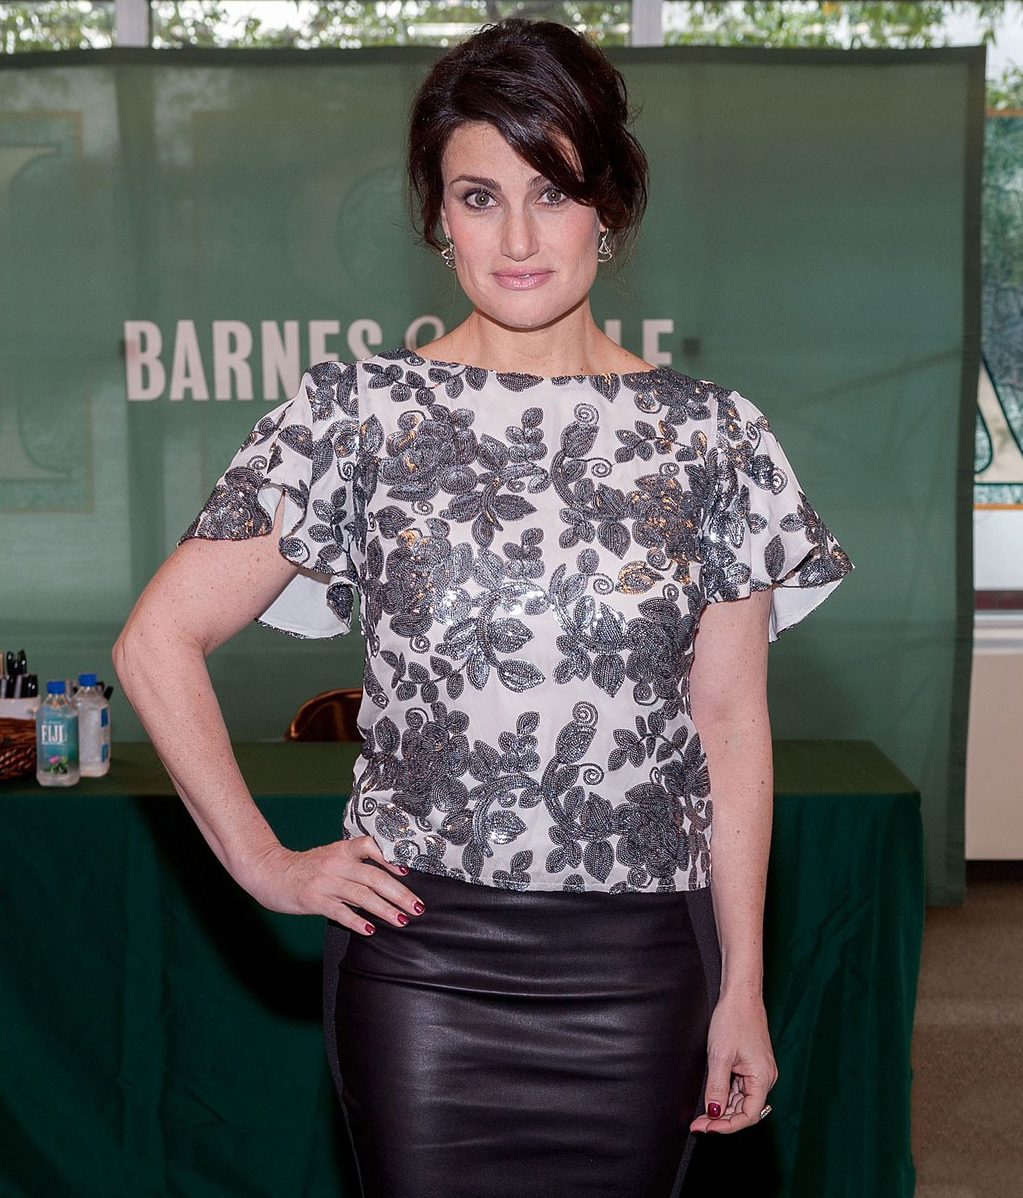 Idina Menzel was spotted at her new Christmas album Holiday Wishes signing